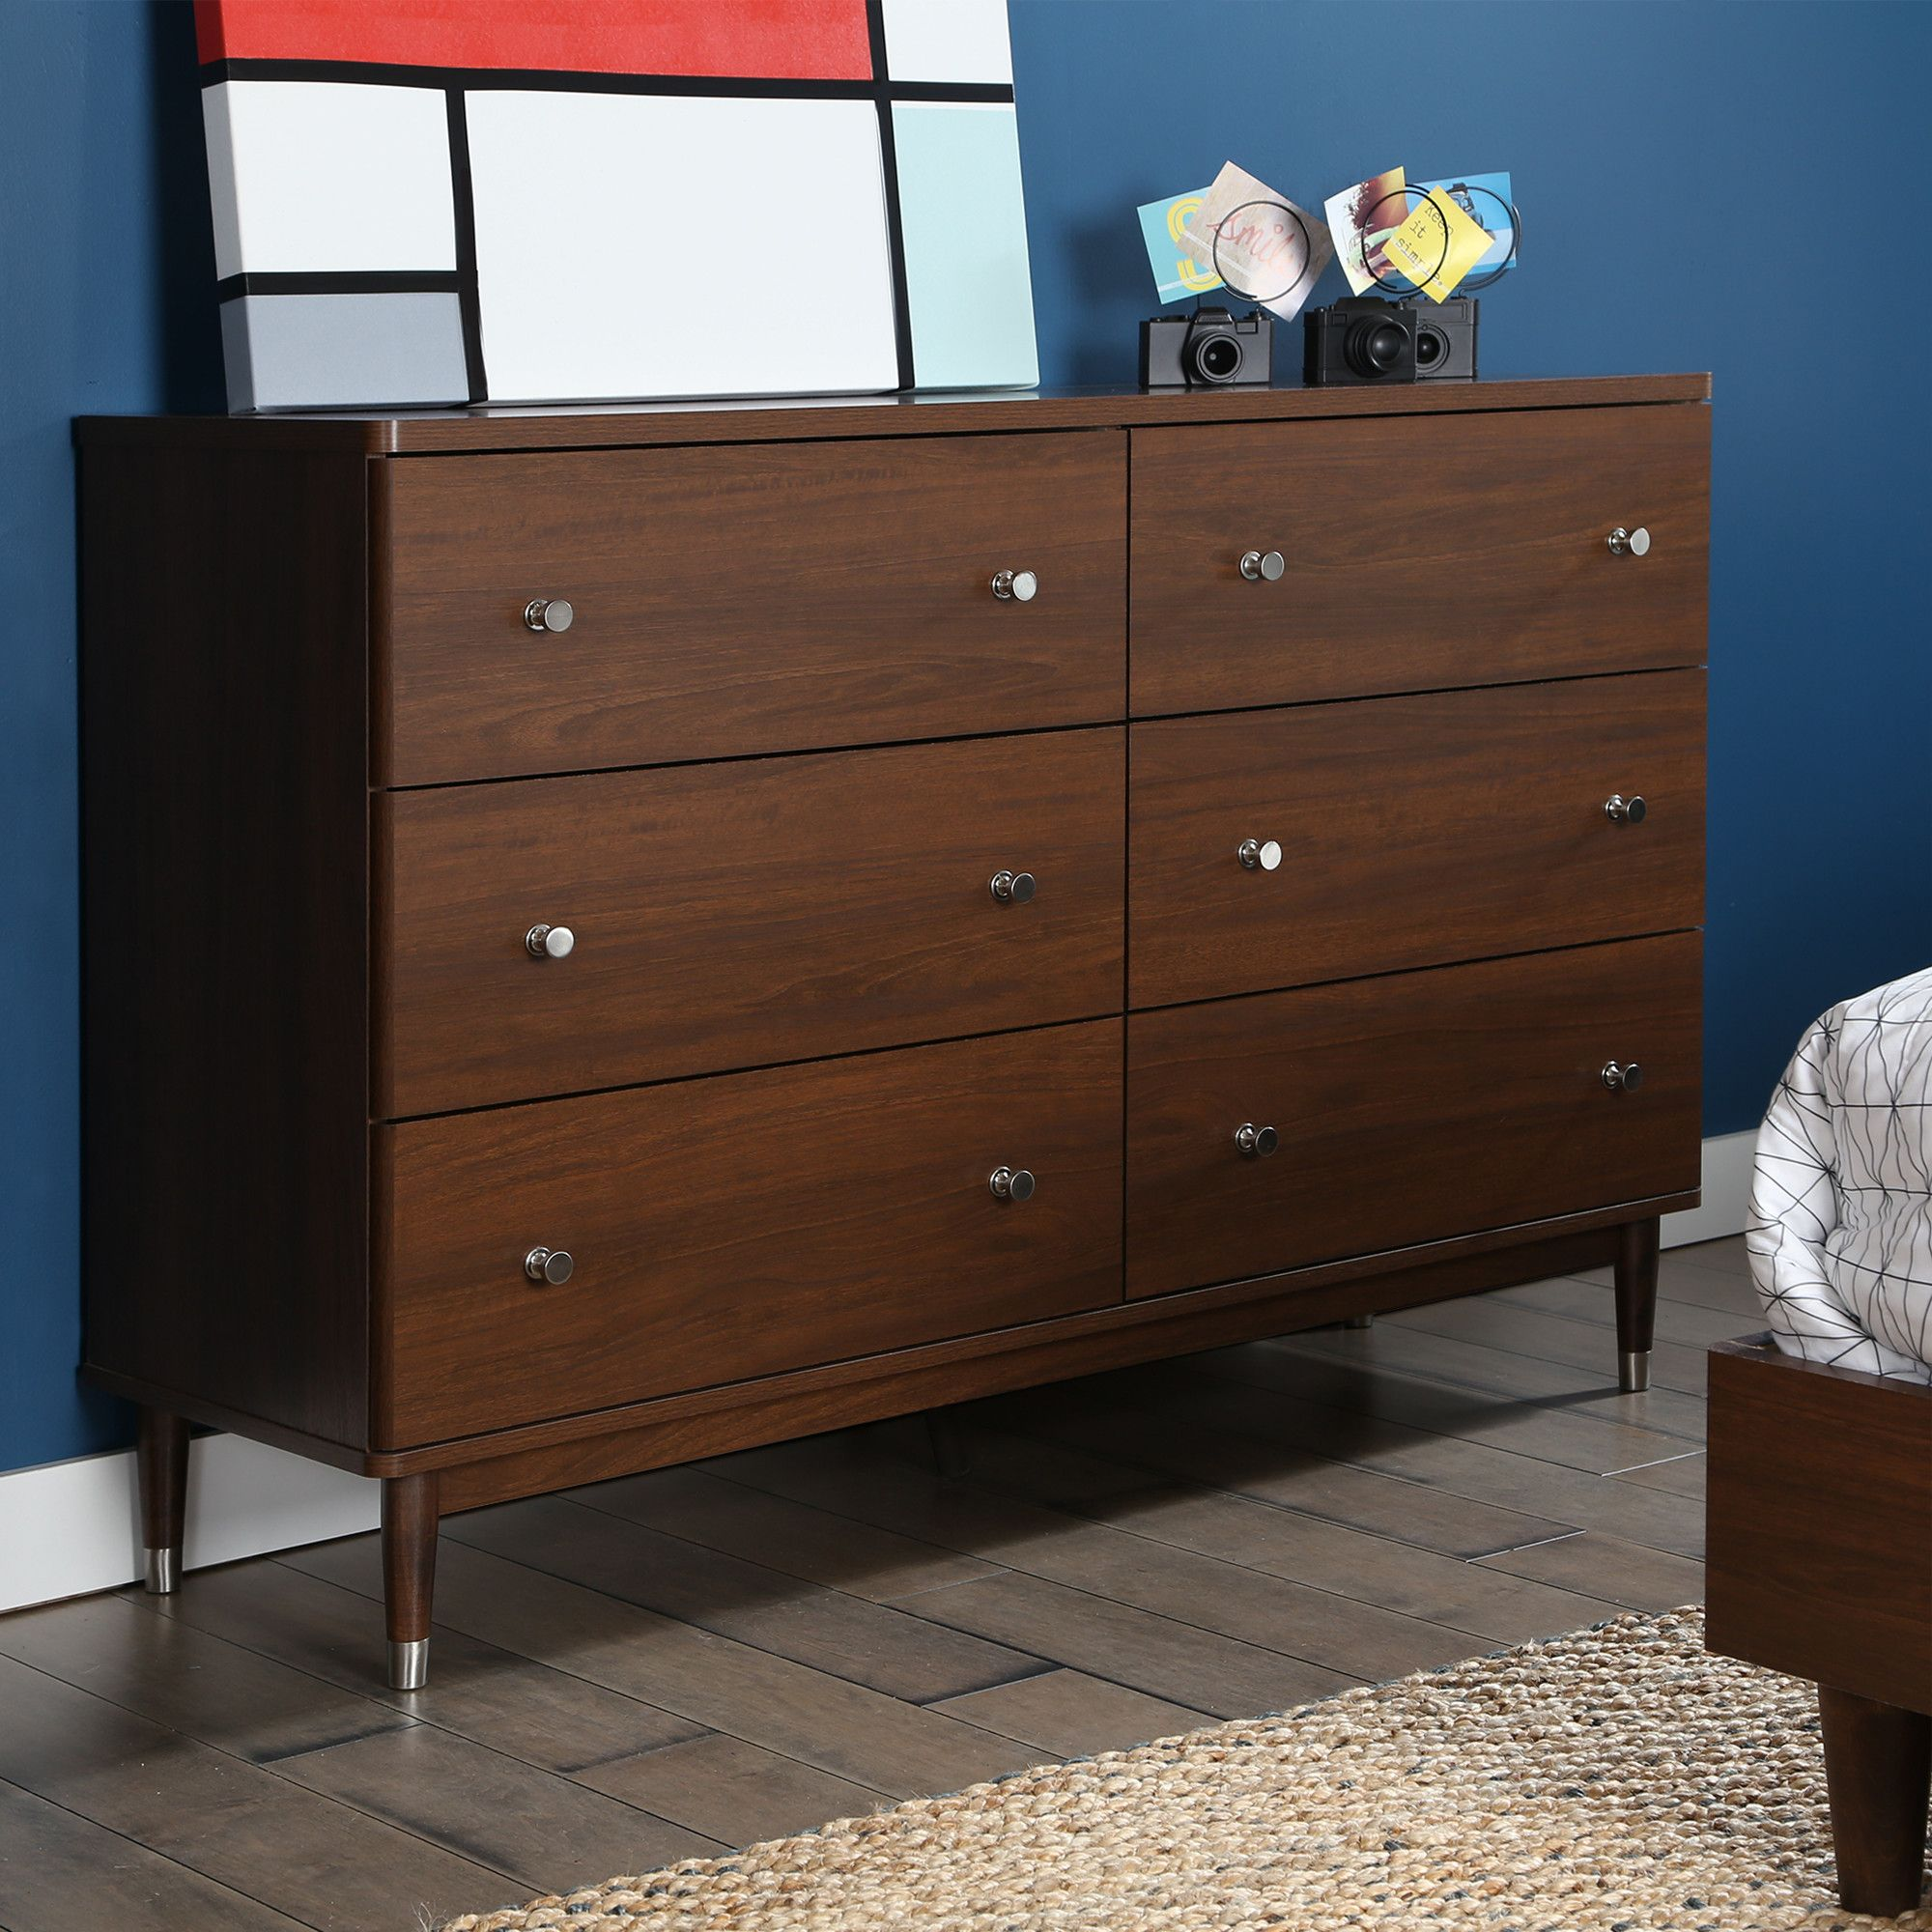 home drawer fancy dresser and design several shape dressers bedroom with awesome furniture decor your for white color kids target